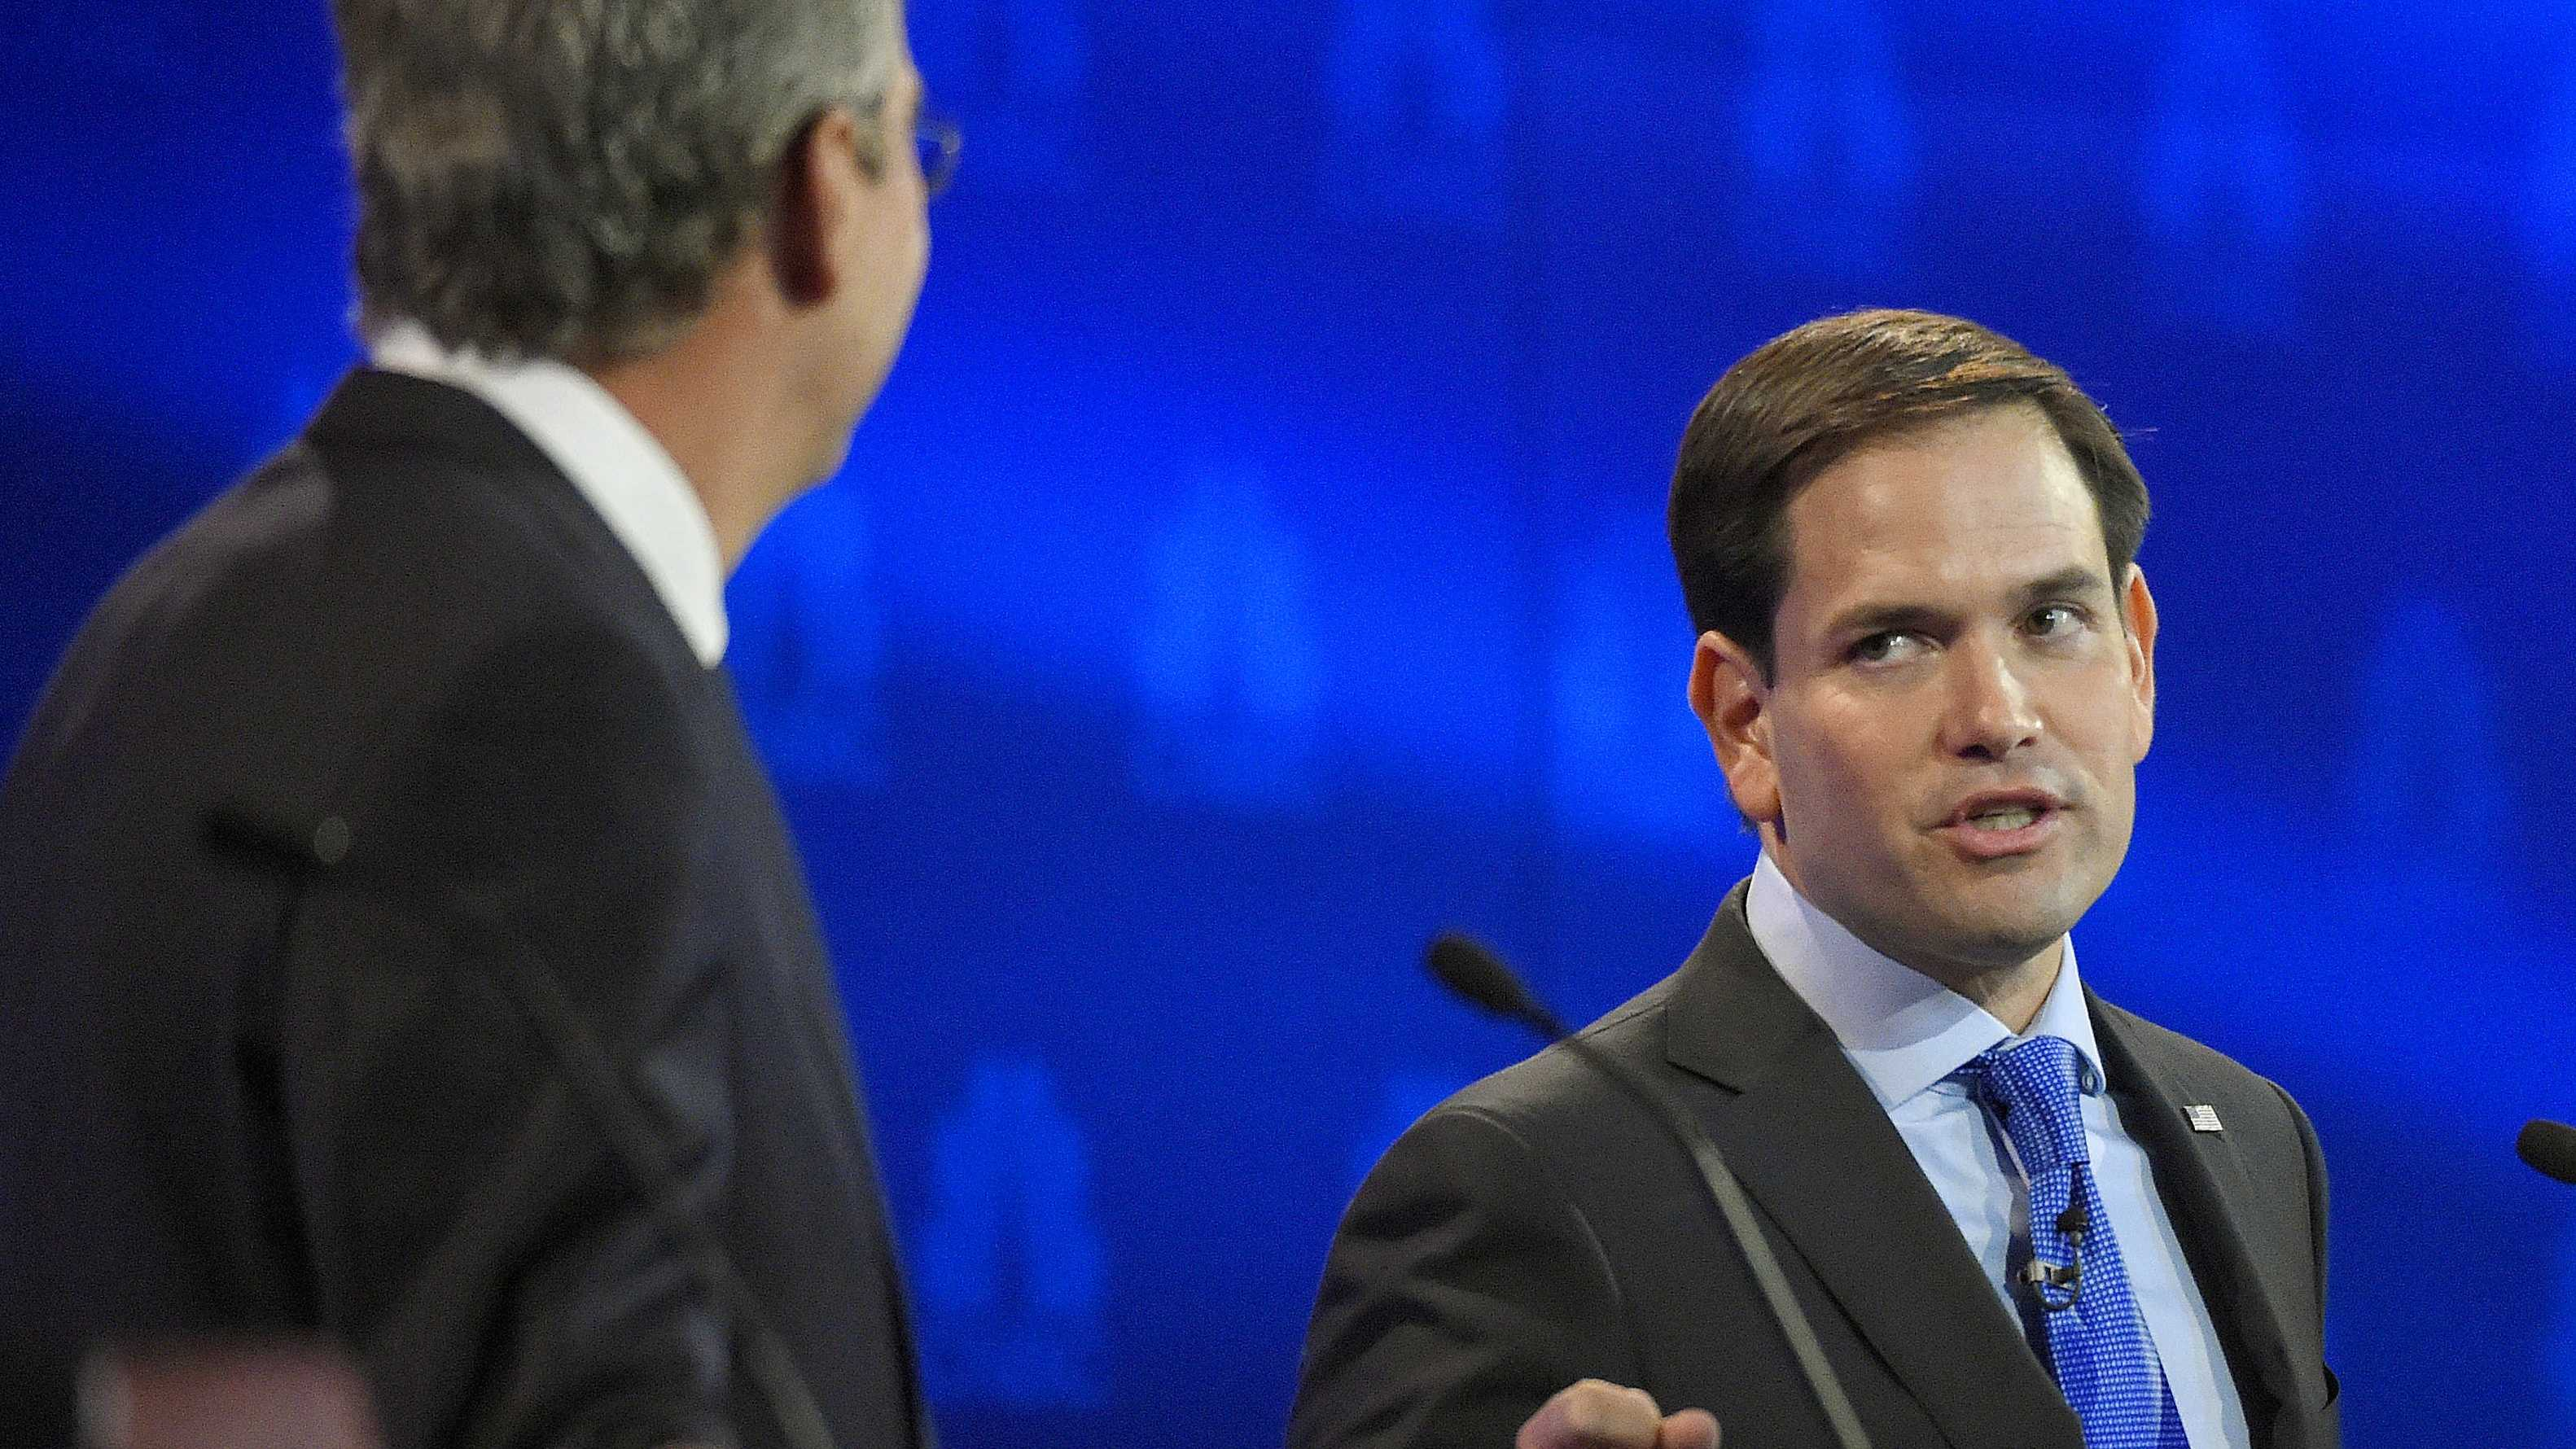 Marco Rubio, right, and Jeb Bush, argue a point during the CNBC Republican presidential debate at the University of Colorado, Wednesday, Oct. 28, 2015, in Boulder, Colo. (AP Photo/Mark J. Terrill)